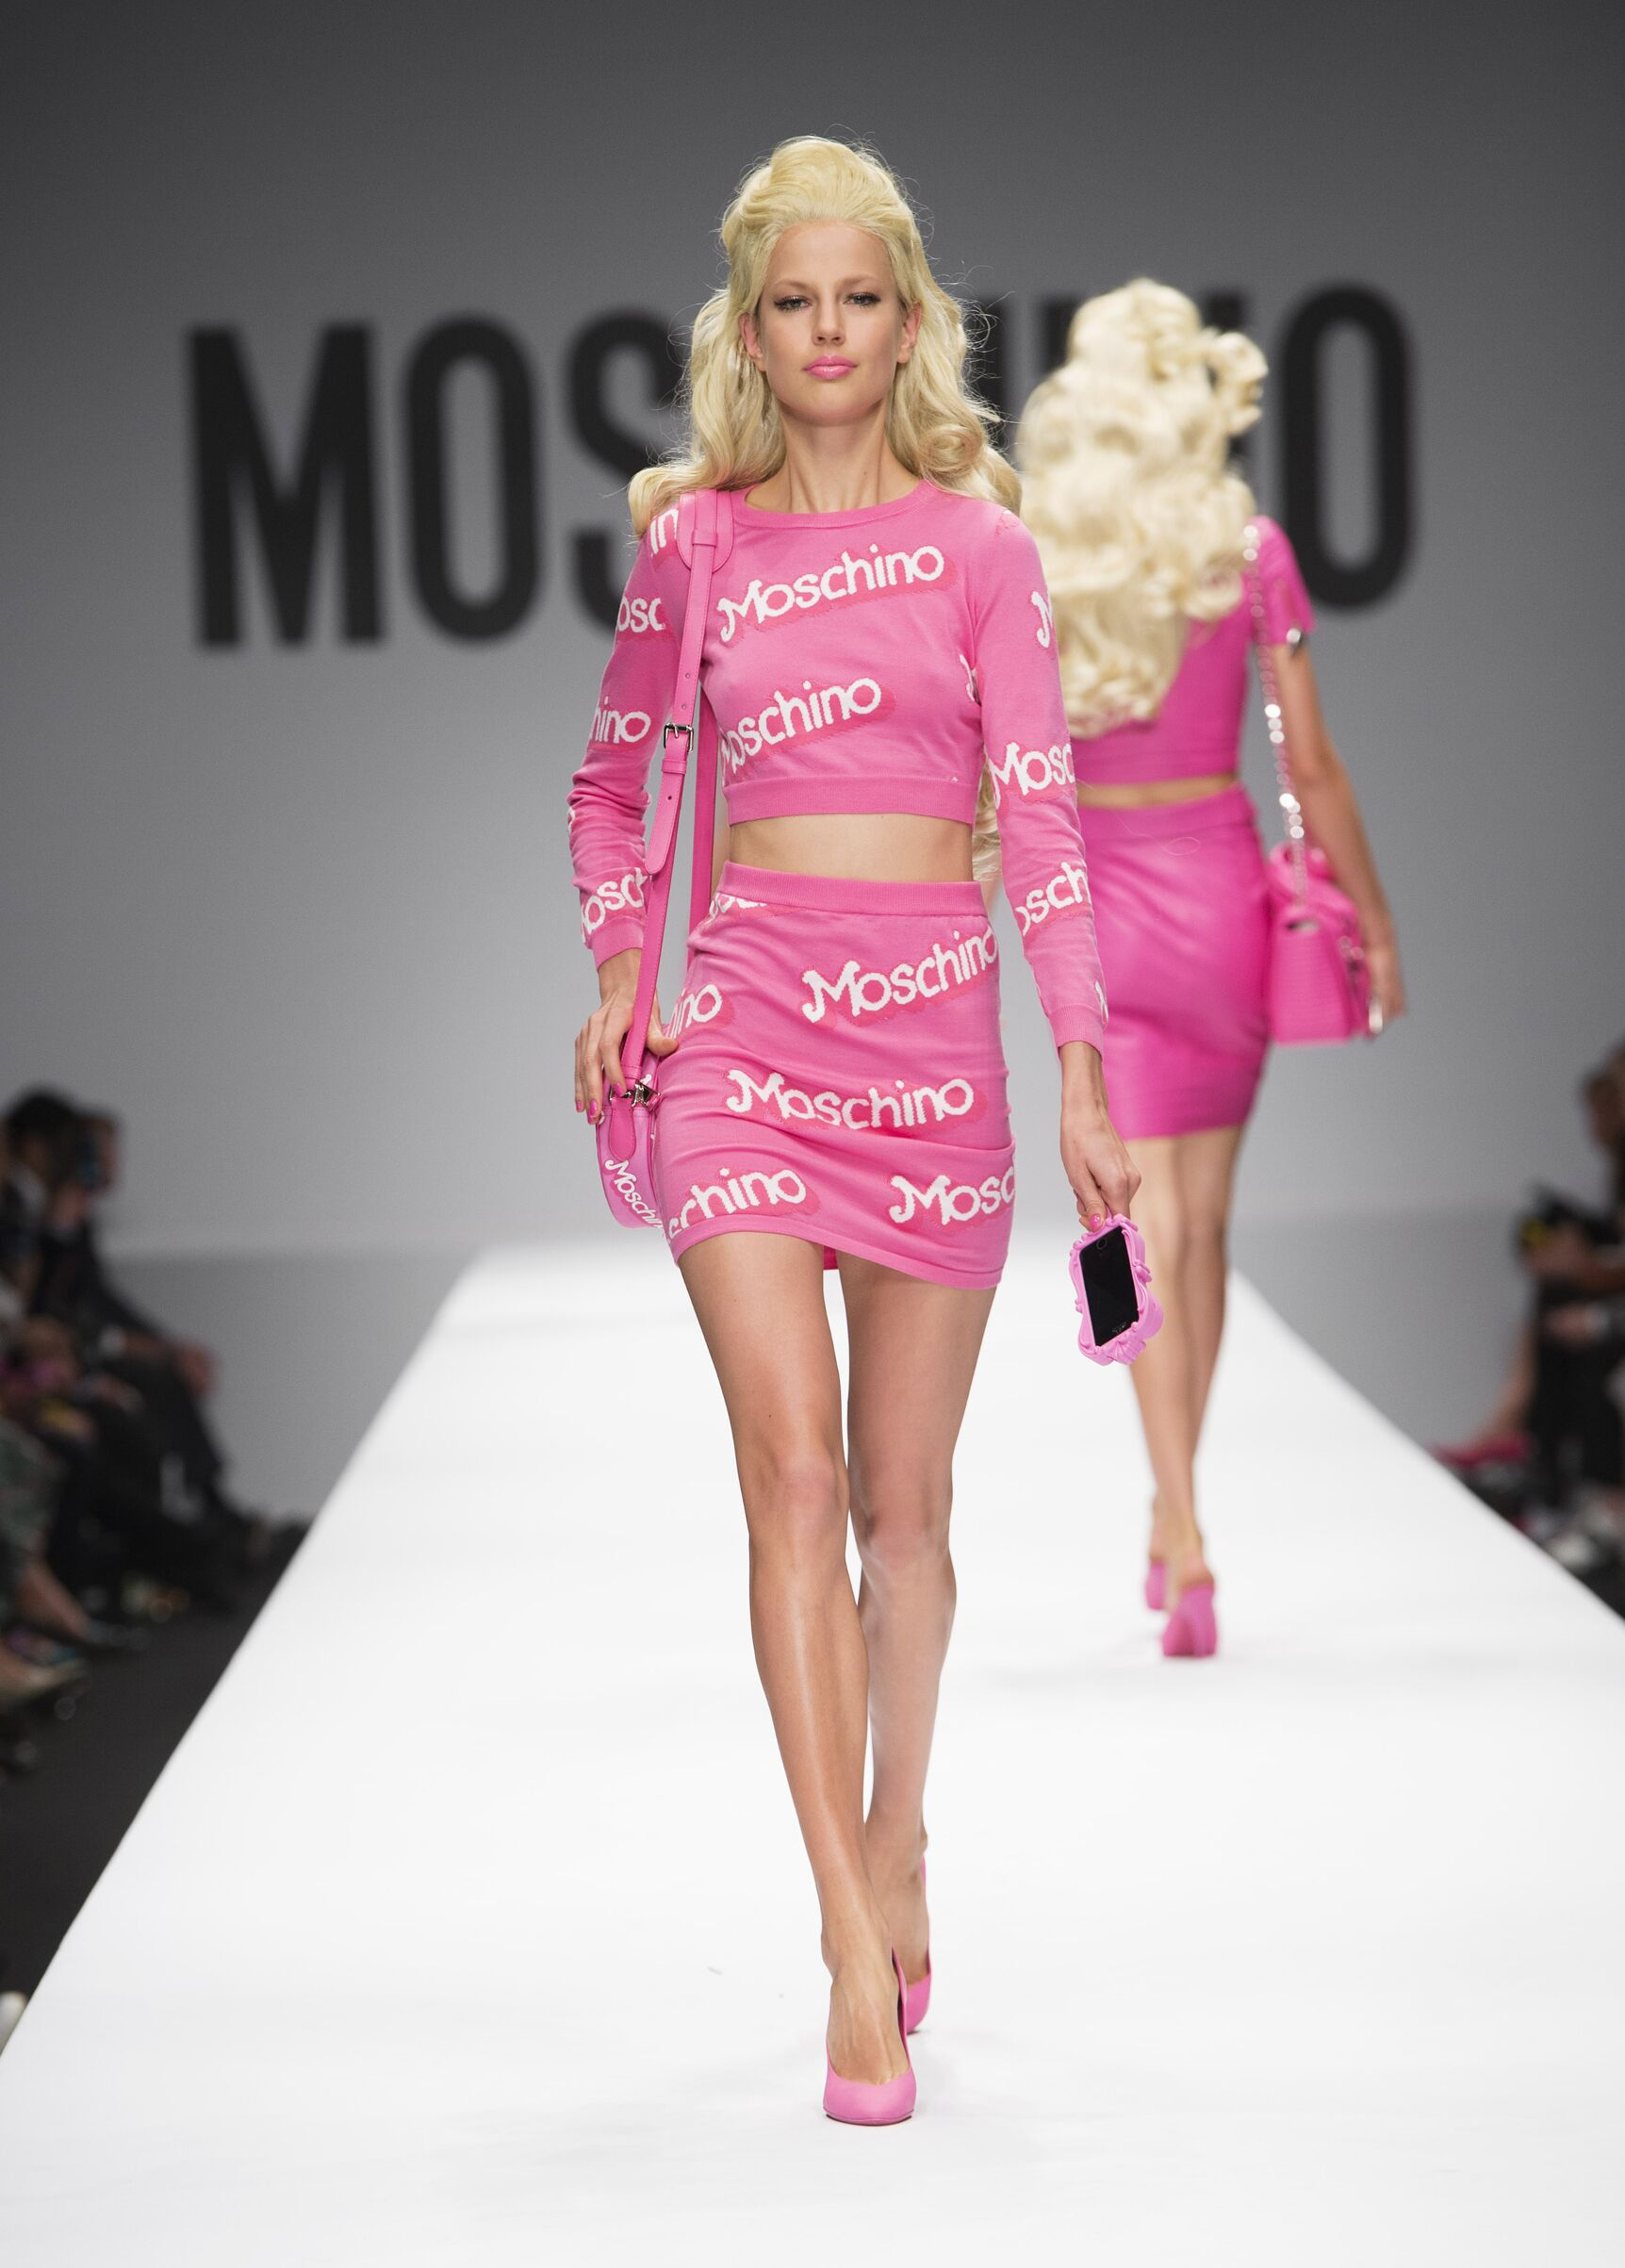 Summer Moschino Trends 2015 Woman Barbie